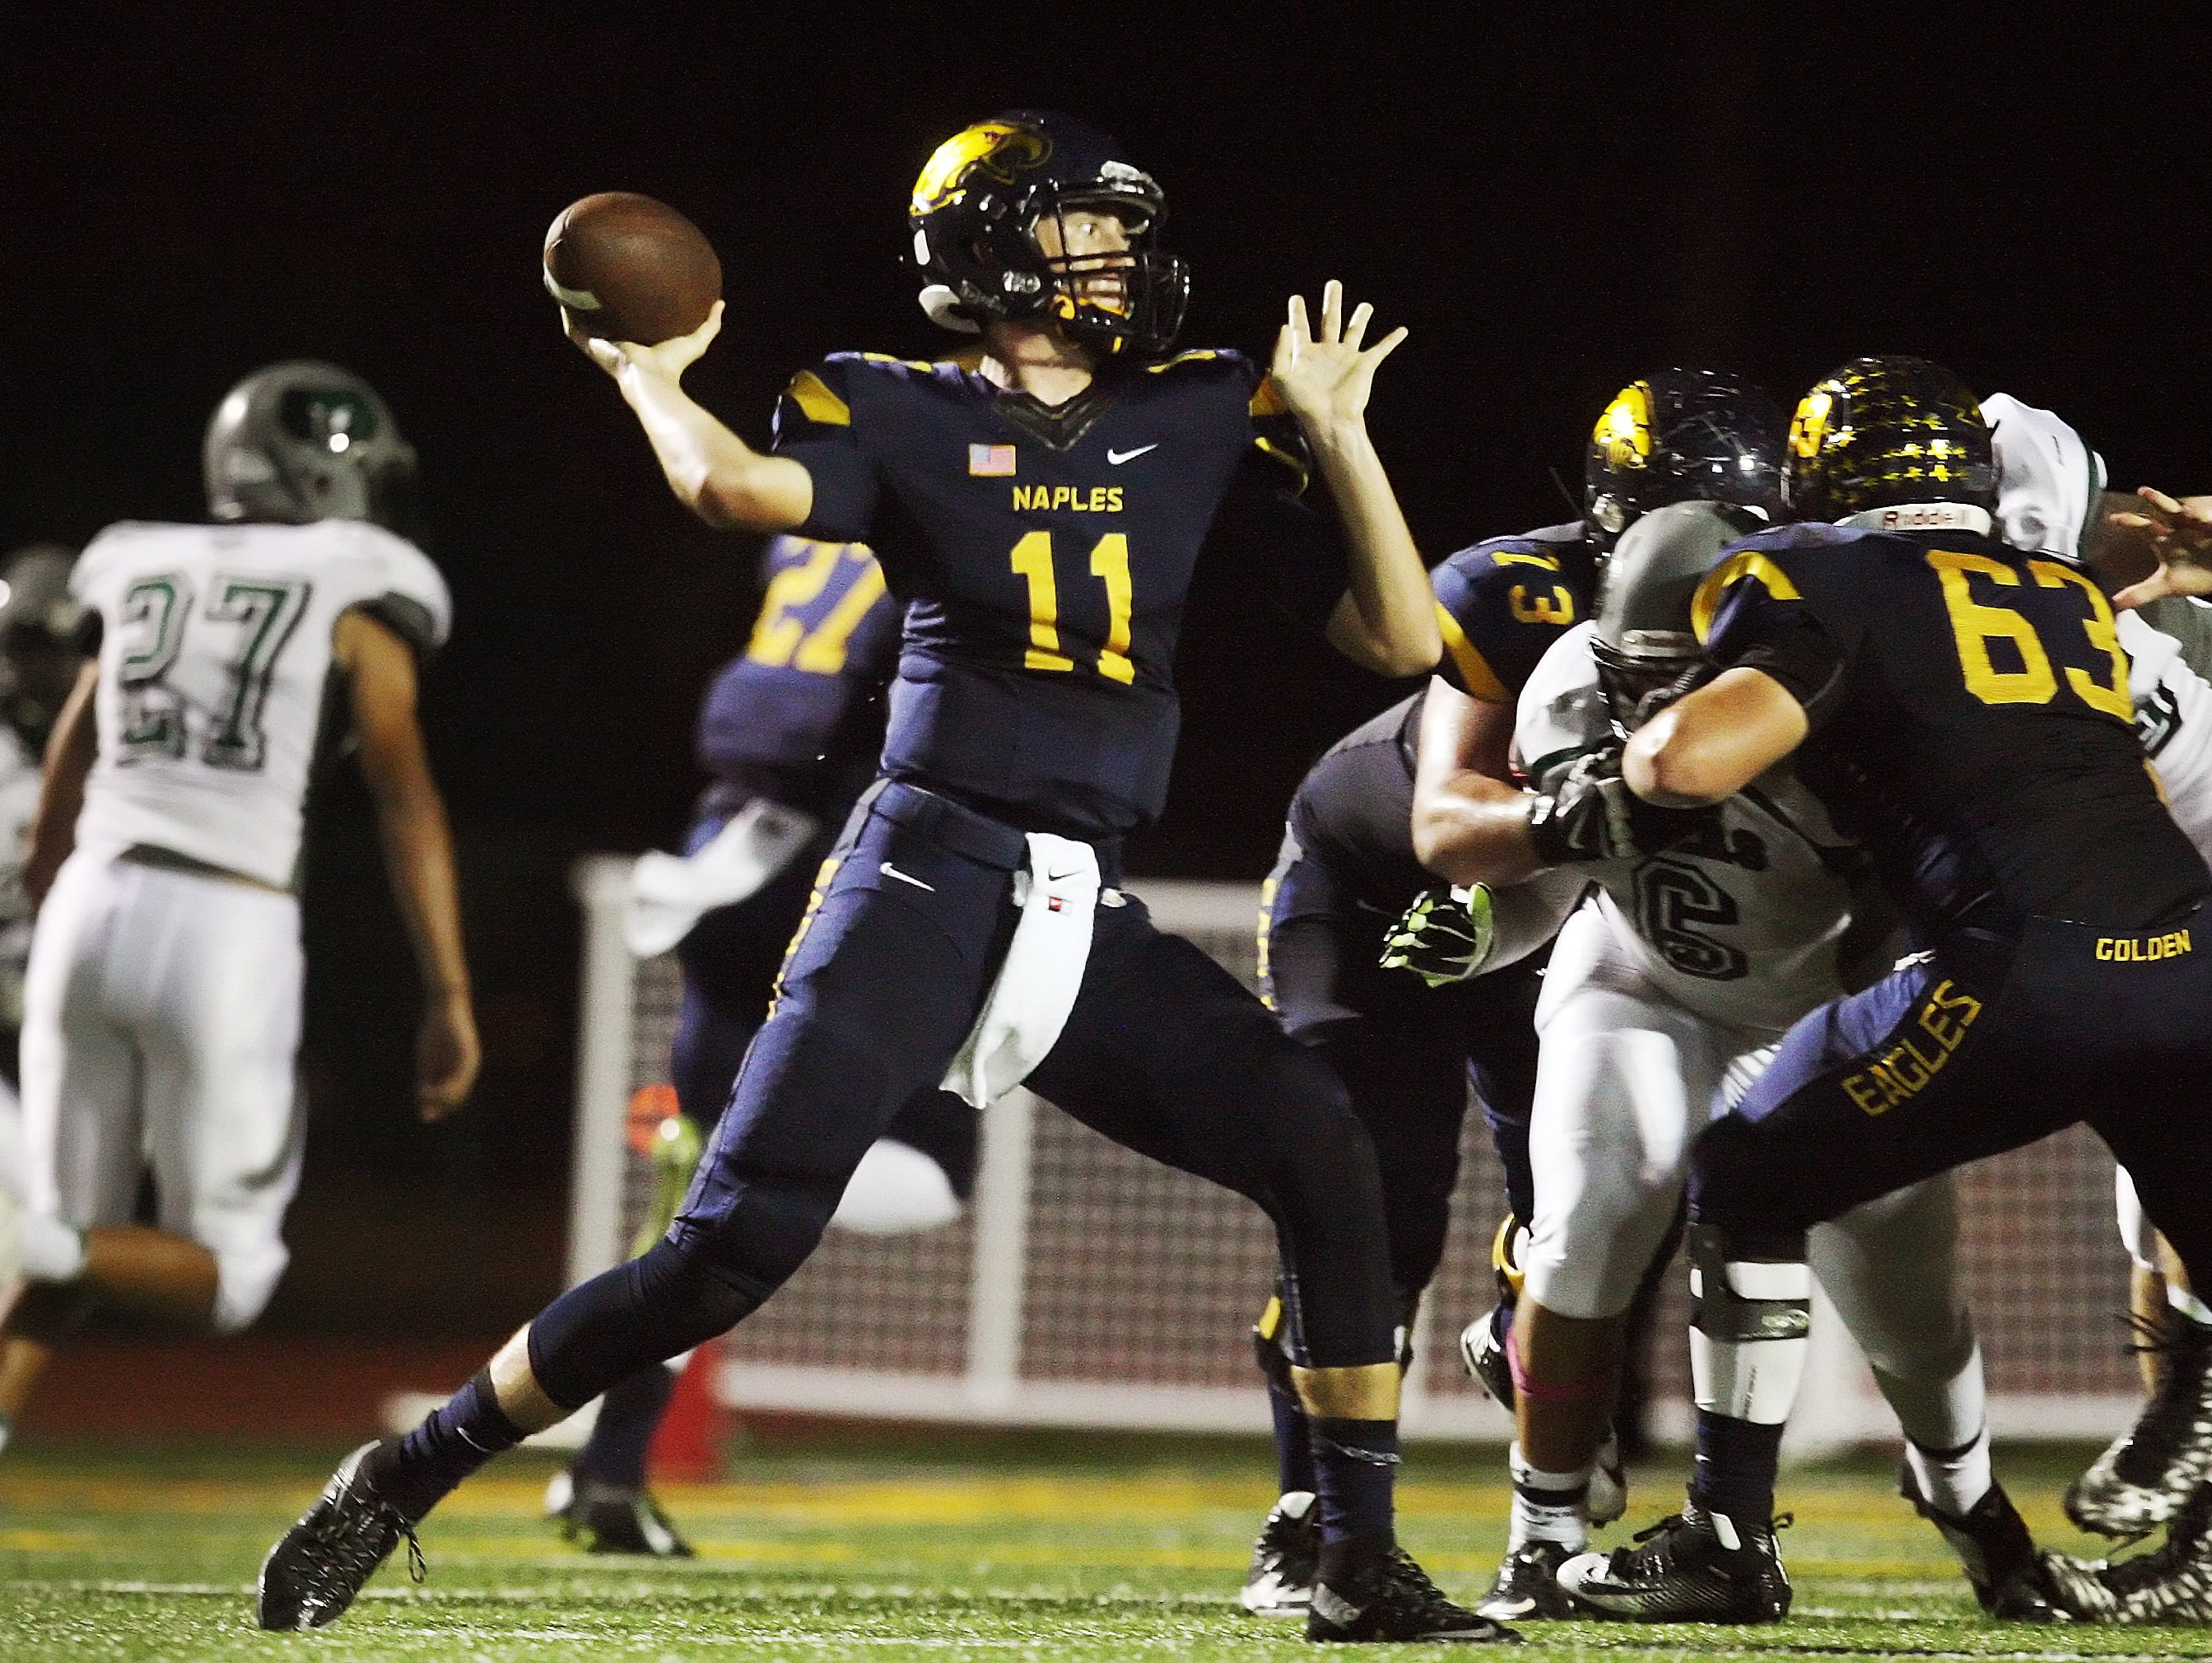 Naples High School's Kieran DiGiorno passes for a first down against Palmetto Ridge on Friday at Naples High School.